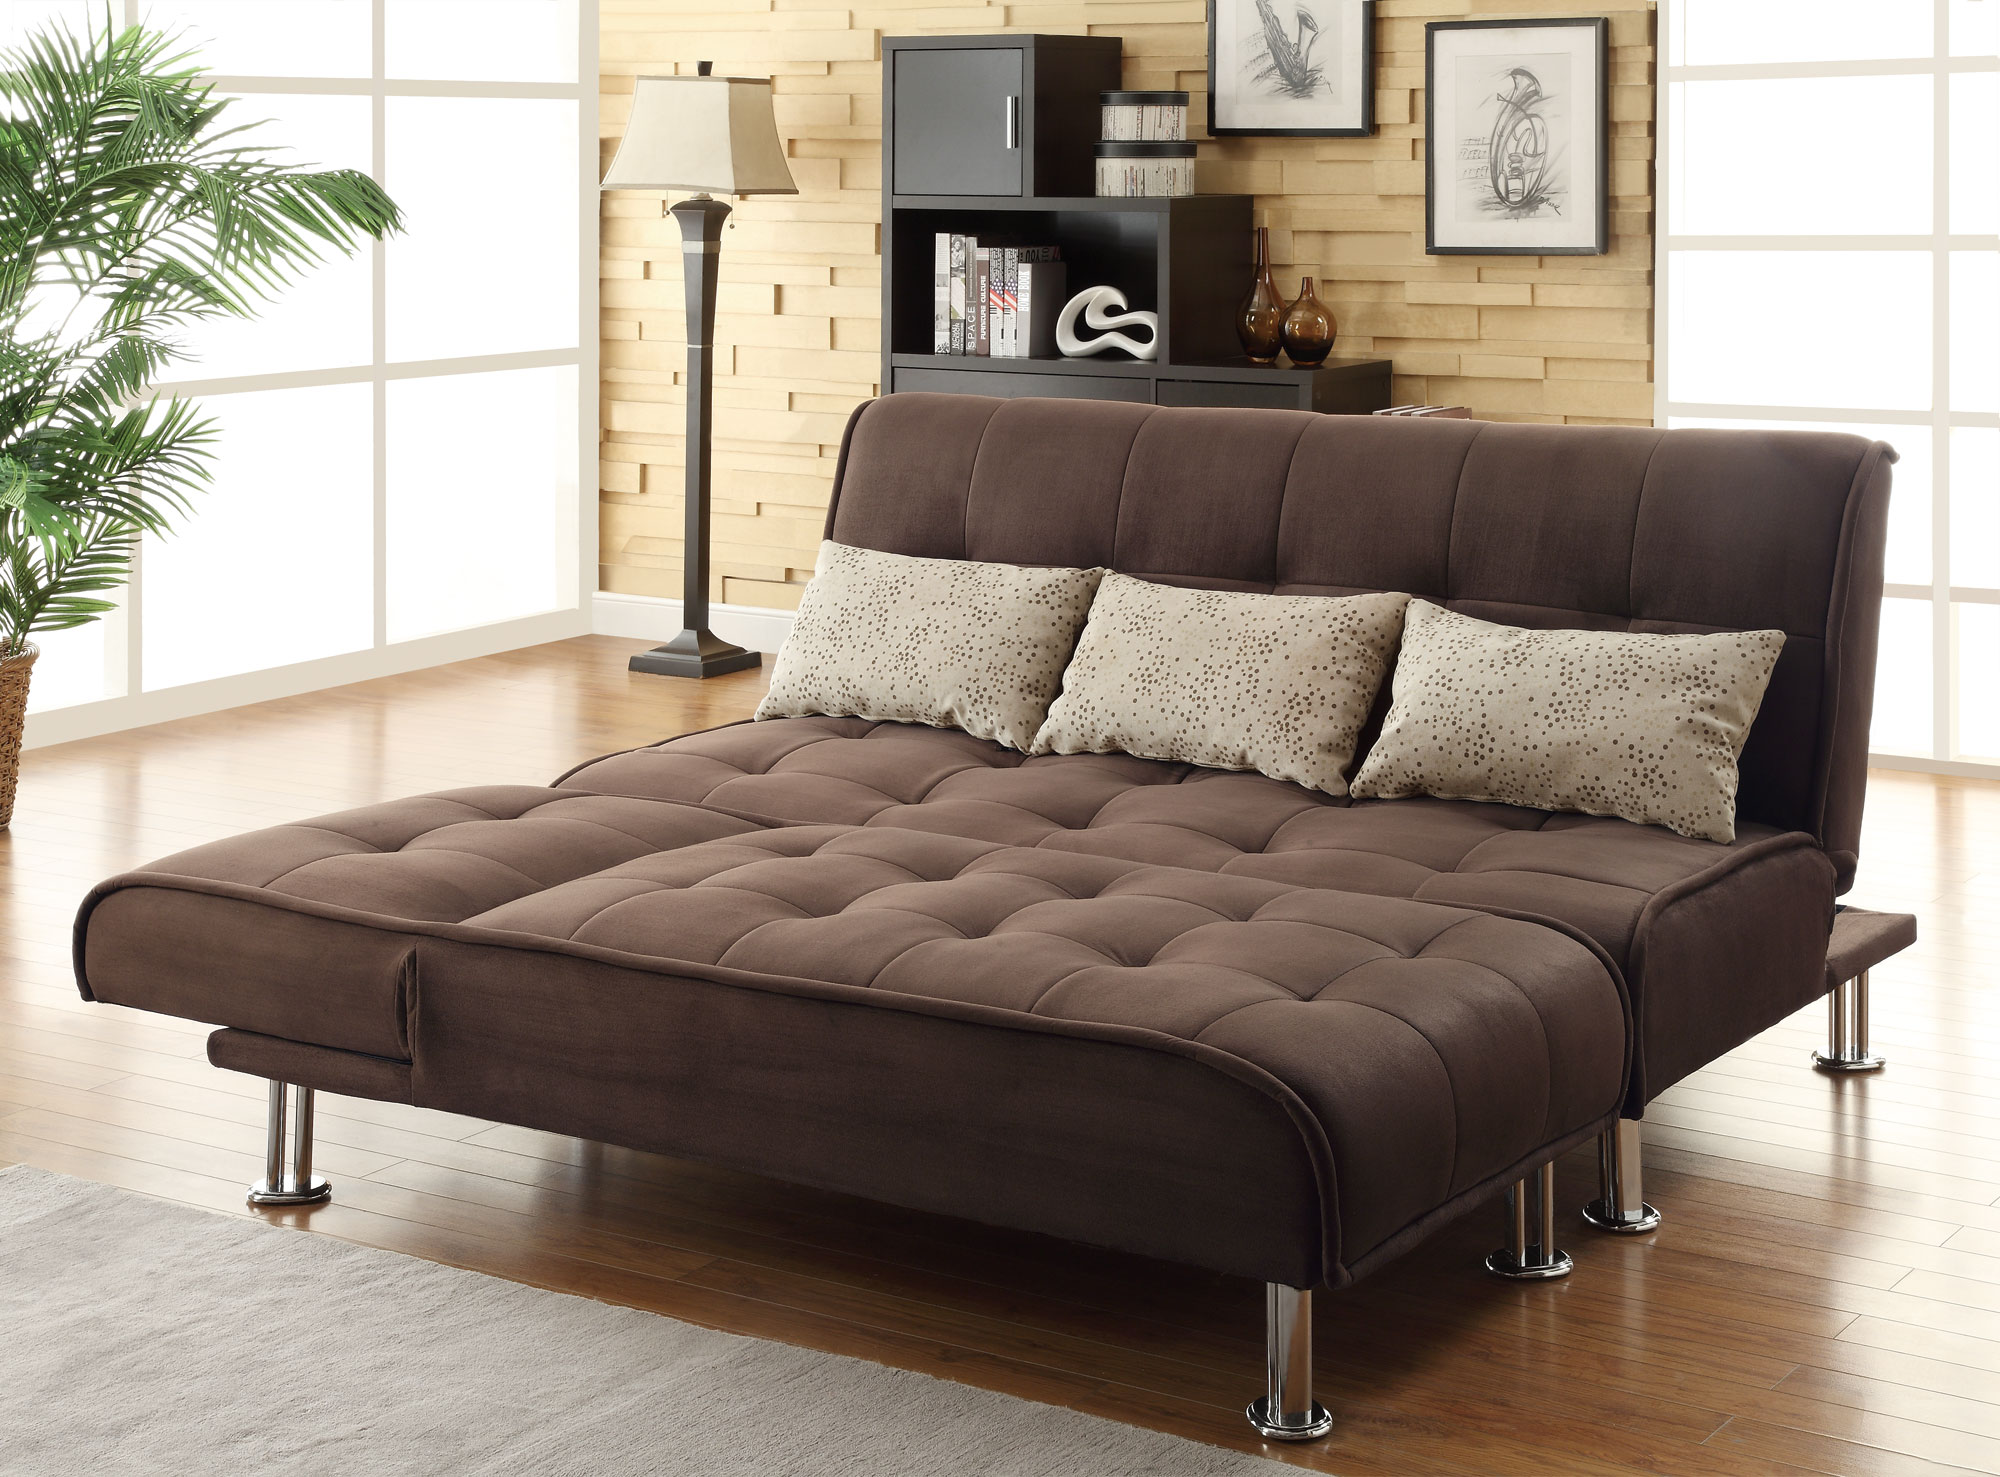 Image of: Big Japanese Futon Amazon